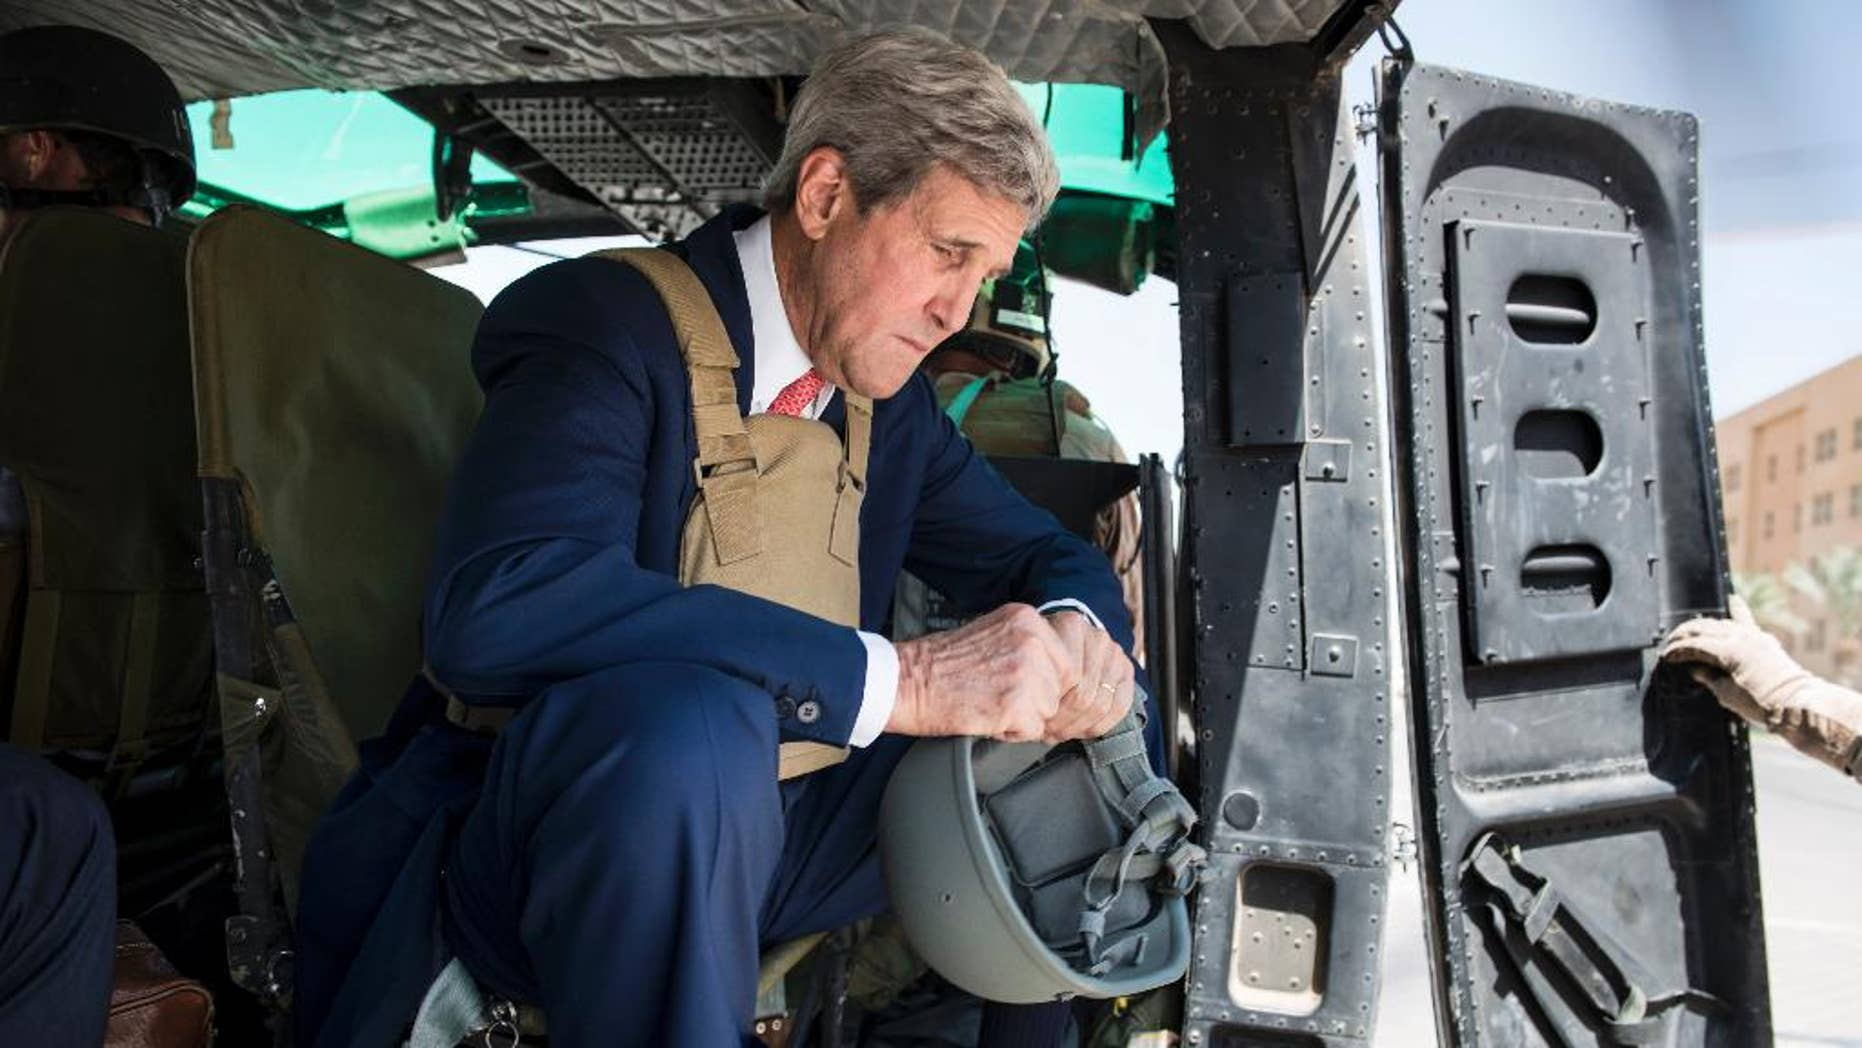 Sept. 10, 2014: U.S. Secretary of State John Kerry arrives in Baghdad, Iraq. Kerry is traveling to the mideast this week to discuss ways to bolster the stability of the new Iraqi government and combat the Islamic State militant group that has taken over large swaths of Iraq and Syria.